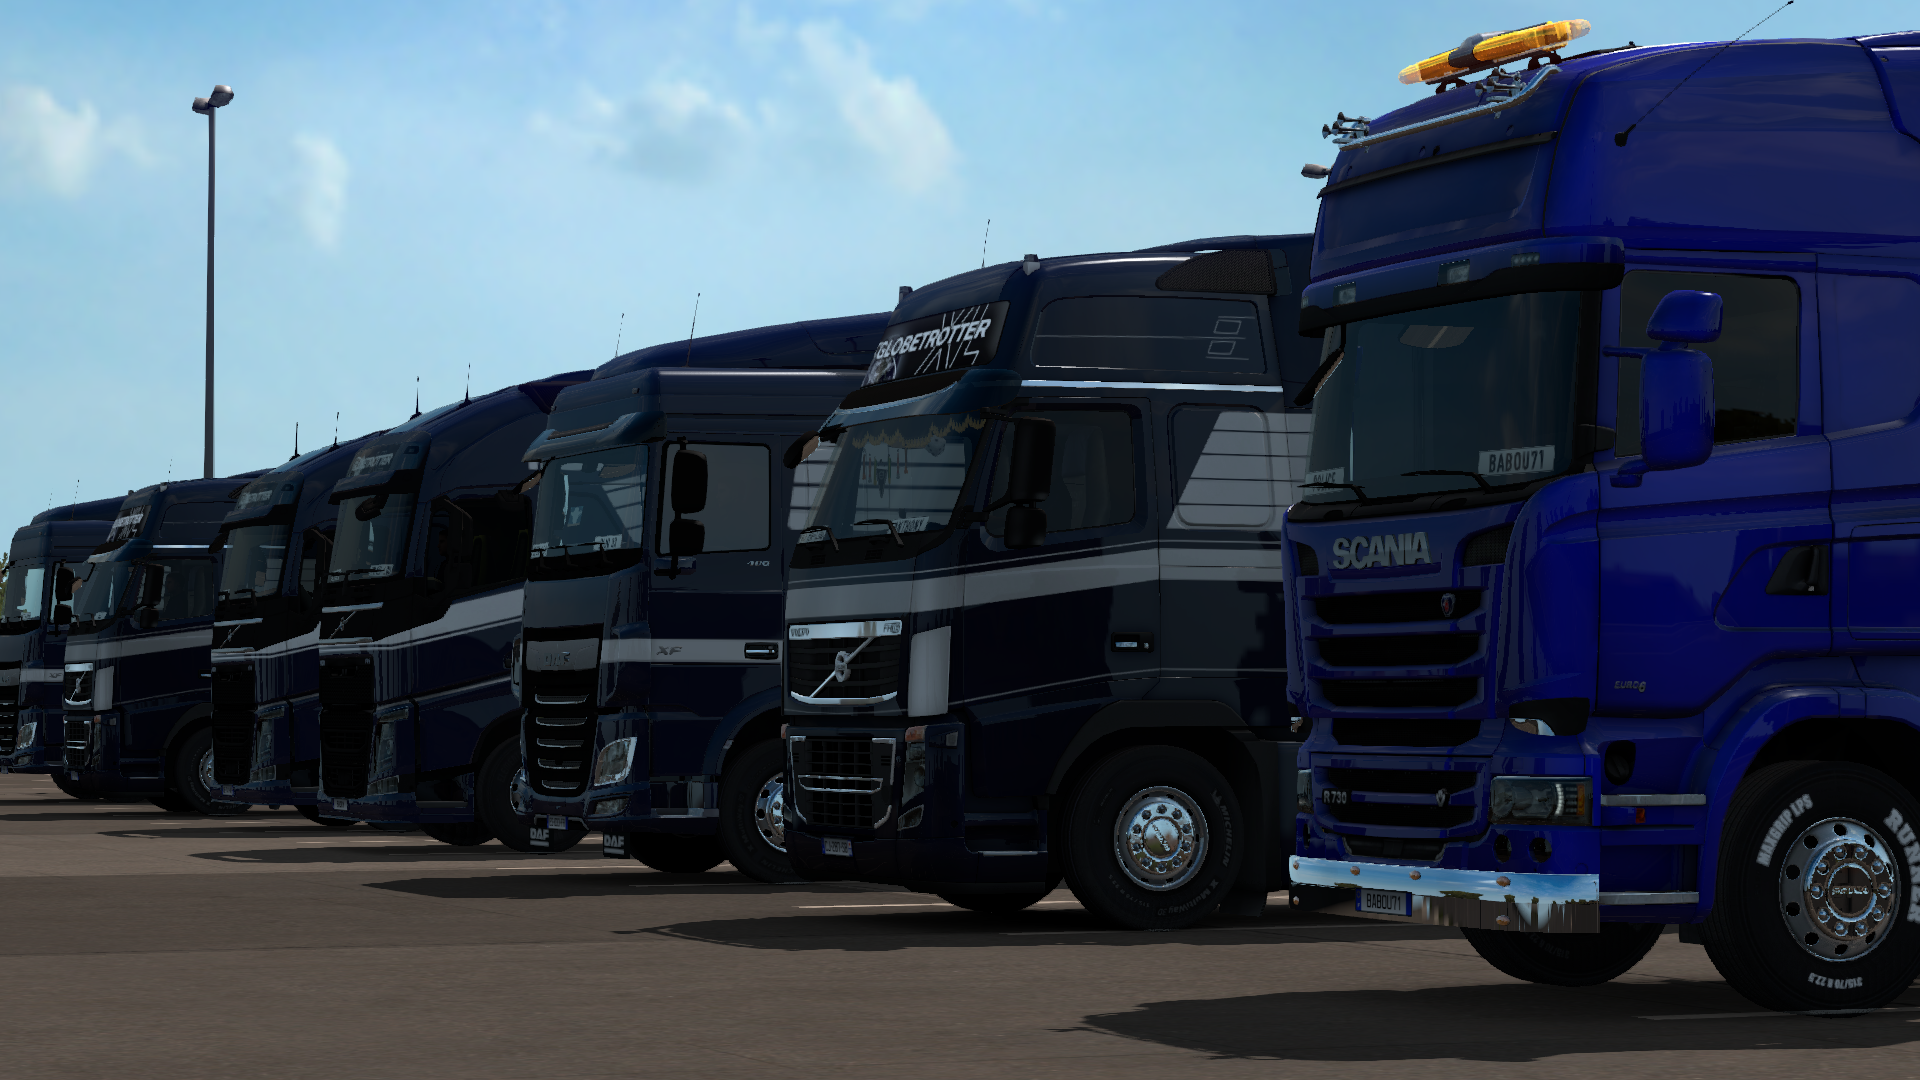 ets2_20180929_230910_00.png